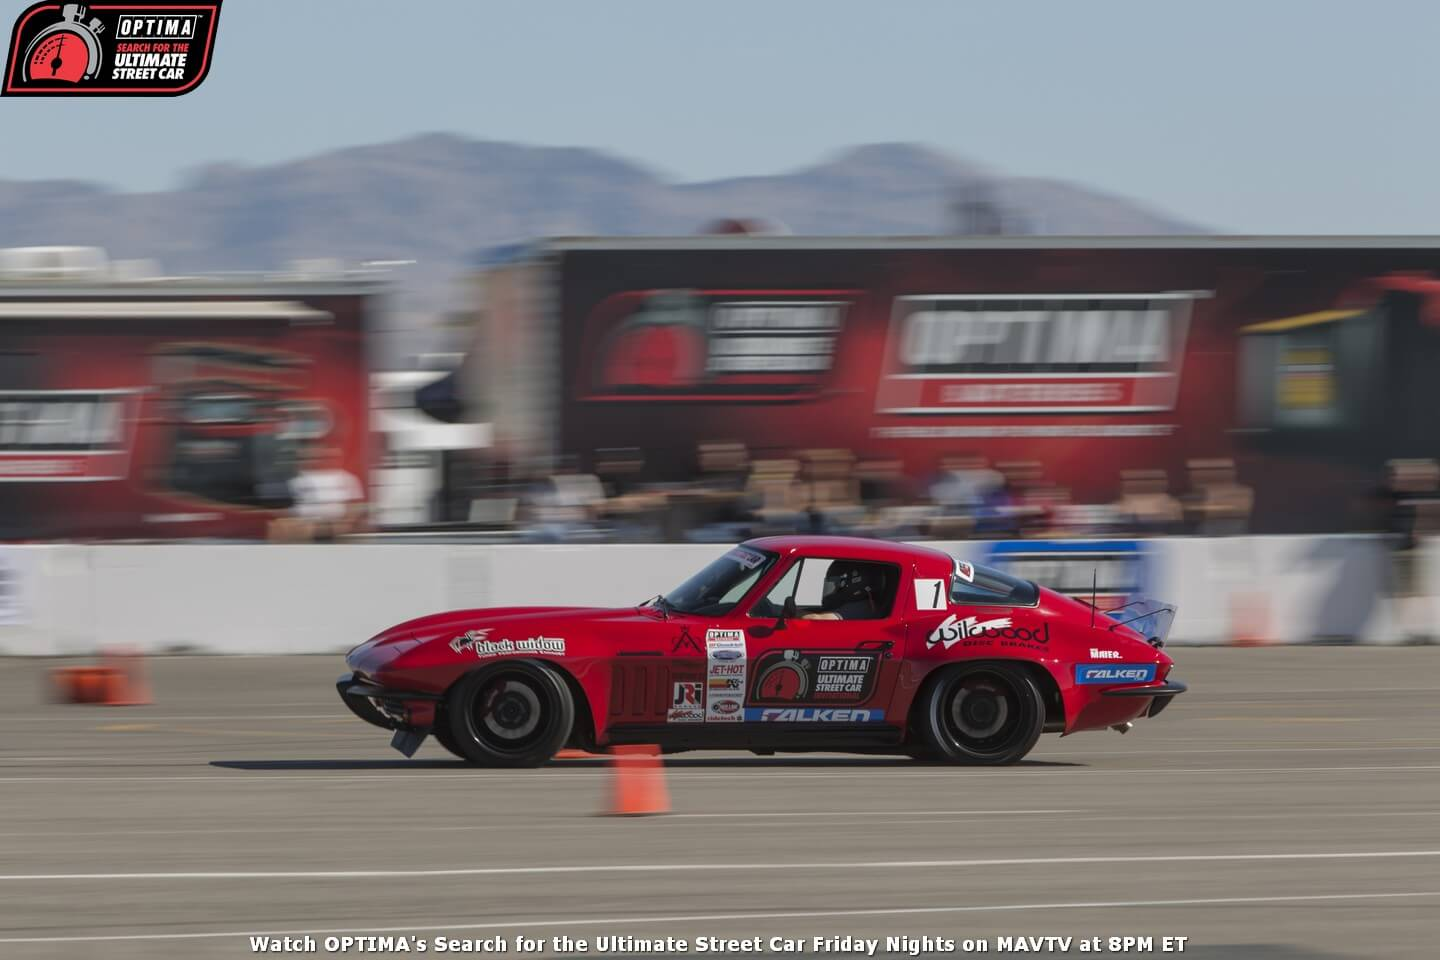 p-Brian-Hobaugh-1965-Chevrolet-Corvette-RideTech-Autocross-2014-OPTIMA-Ultimate-Street-Car-Invitational_25